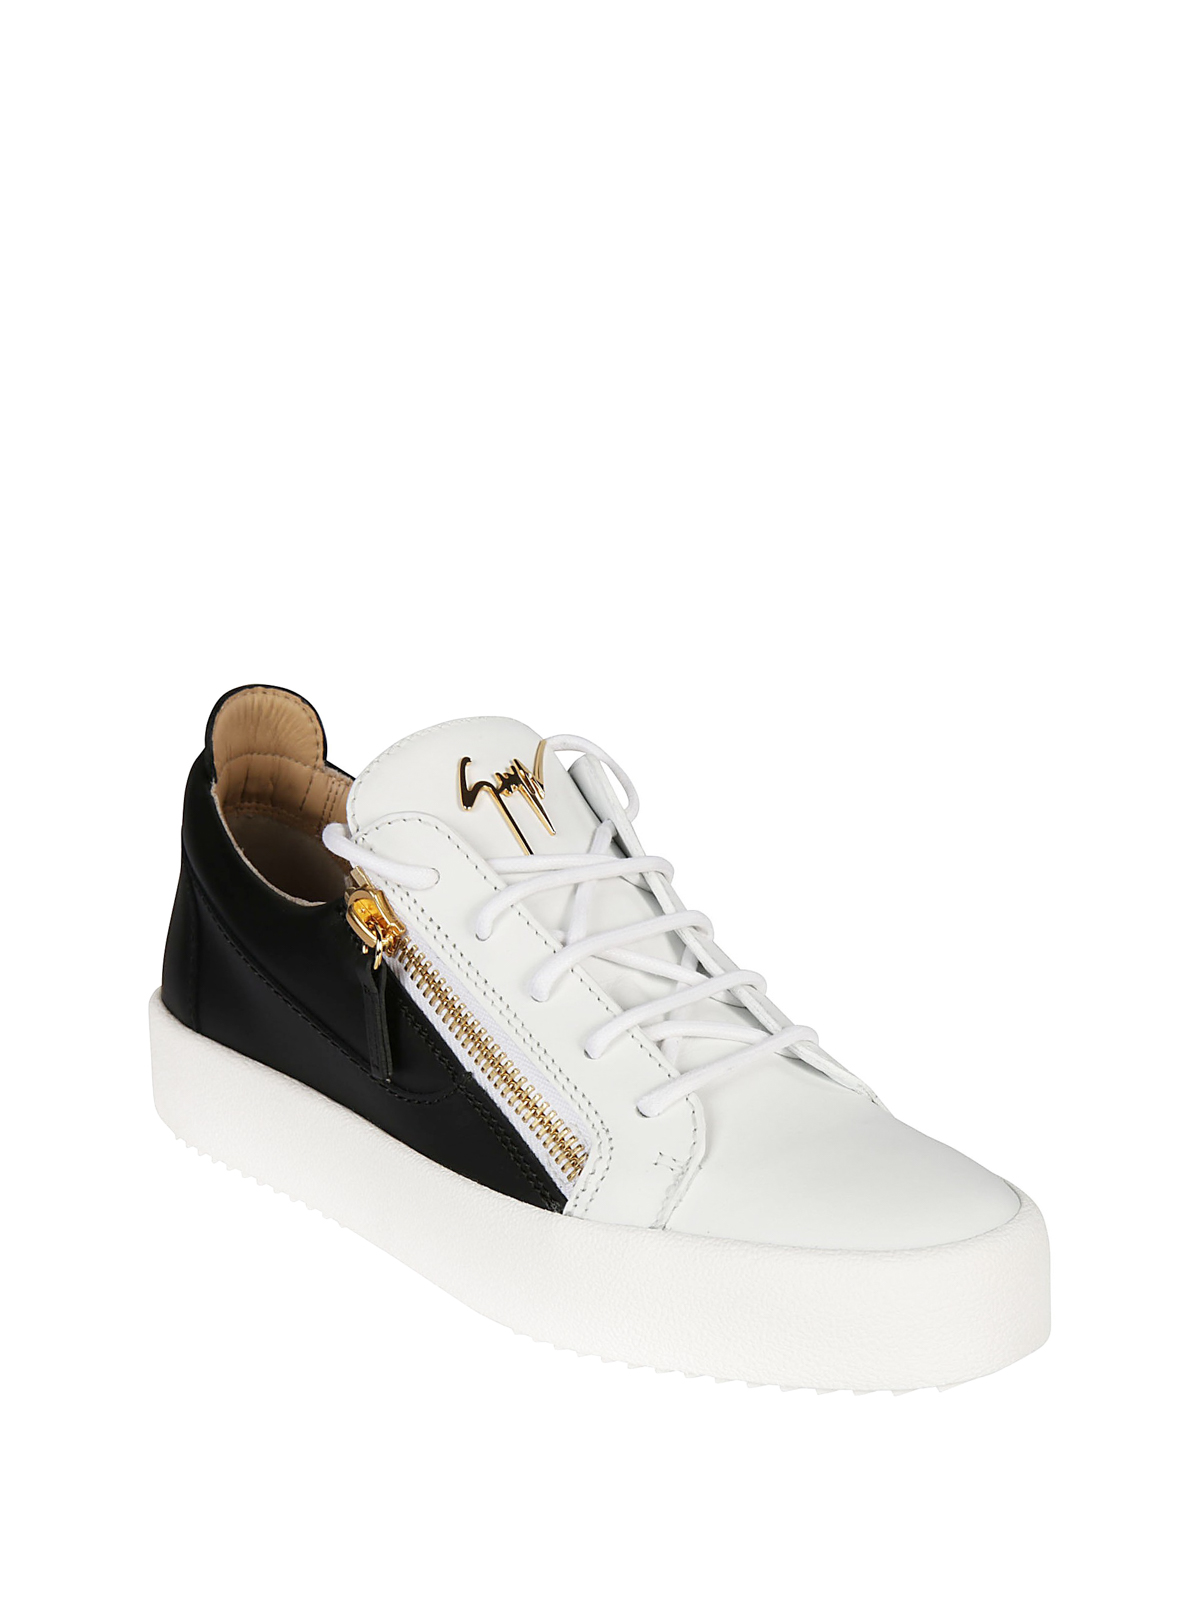 214412b7b610 GIUSEPPE ZANOTTI  trainers online - Frankie white and black leather sneakers